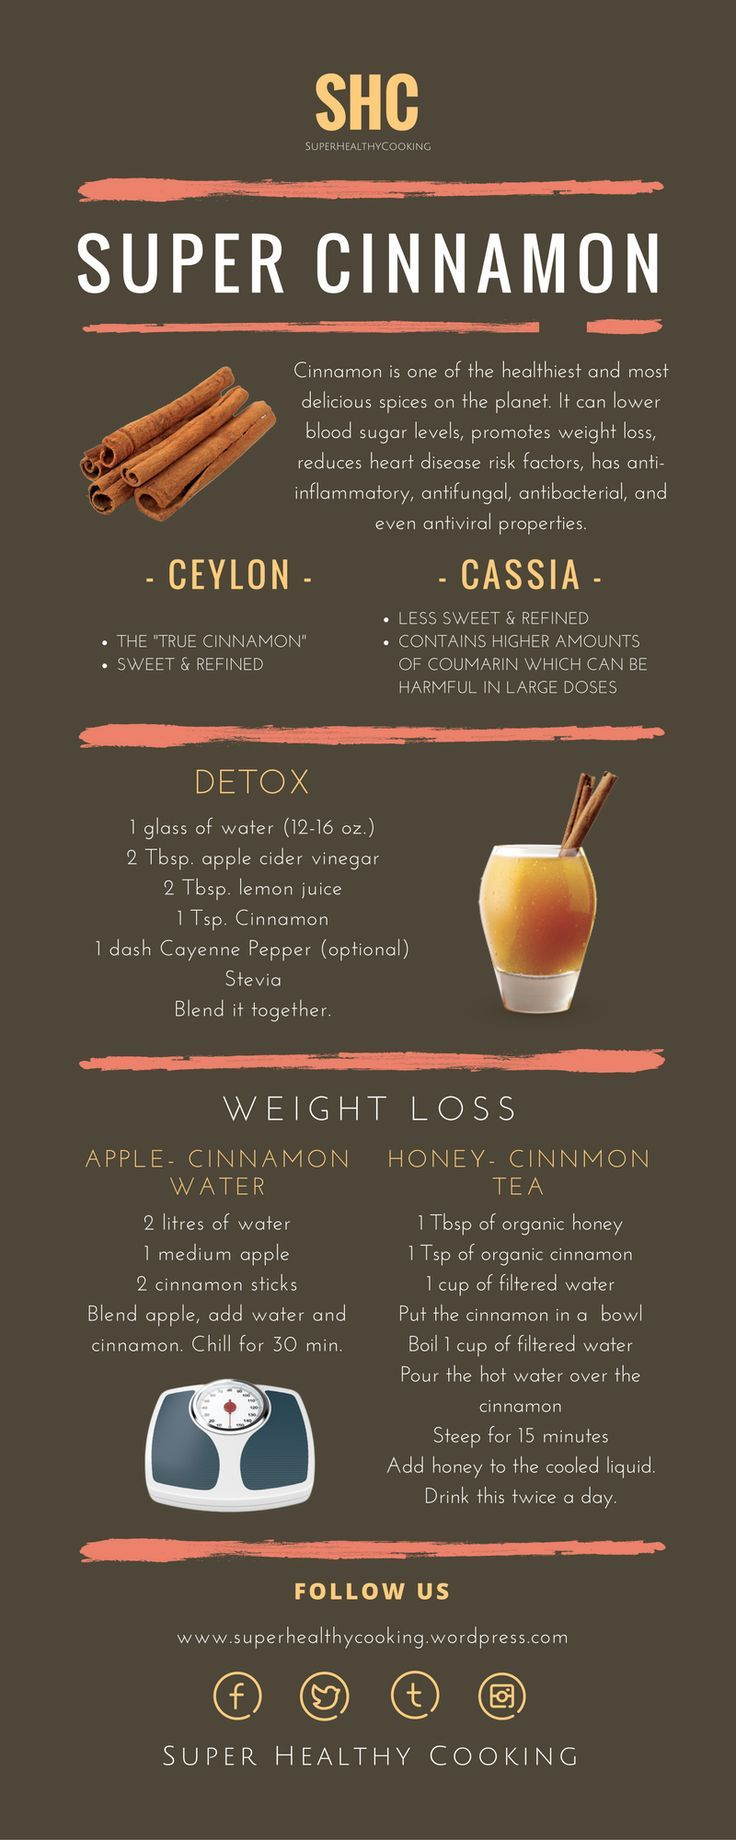 Super Cinnamon - Super Healthy Cooking - Health Benefits of Cinnamon: cinnamon, health benefits, healthy, herb, ceylon, cassia, detox, weight loss, infographic